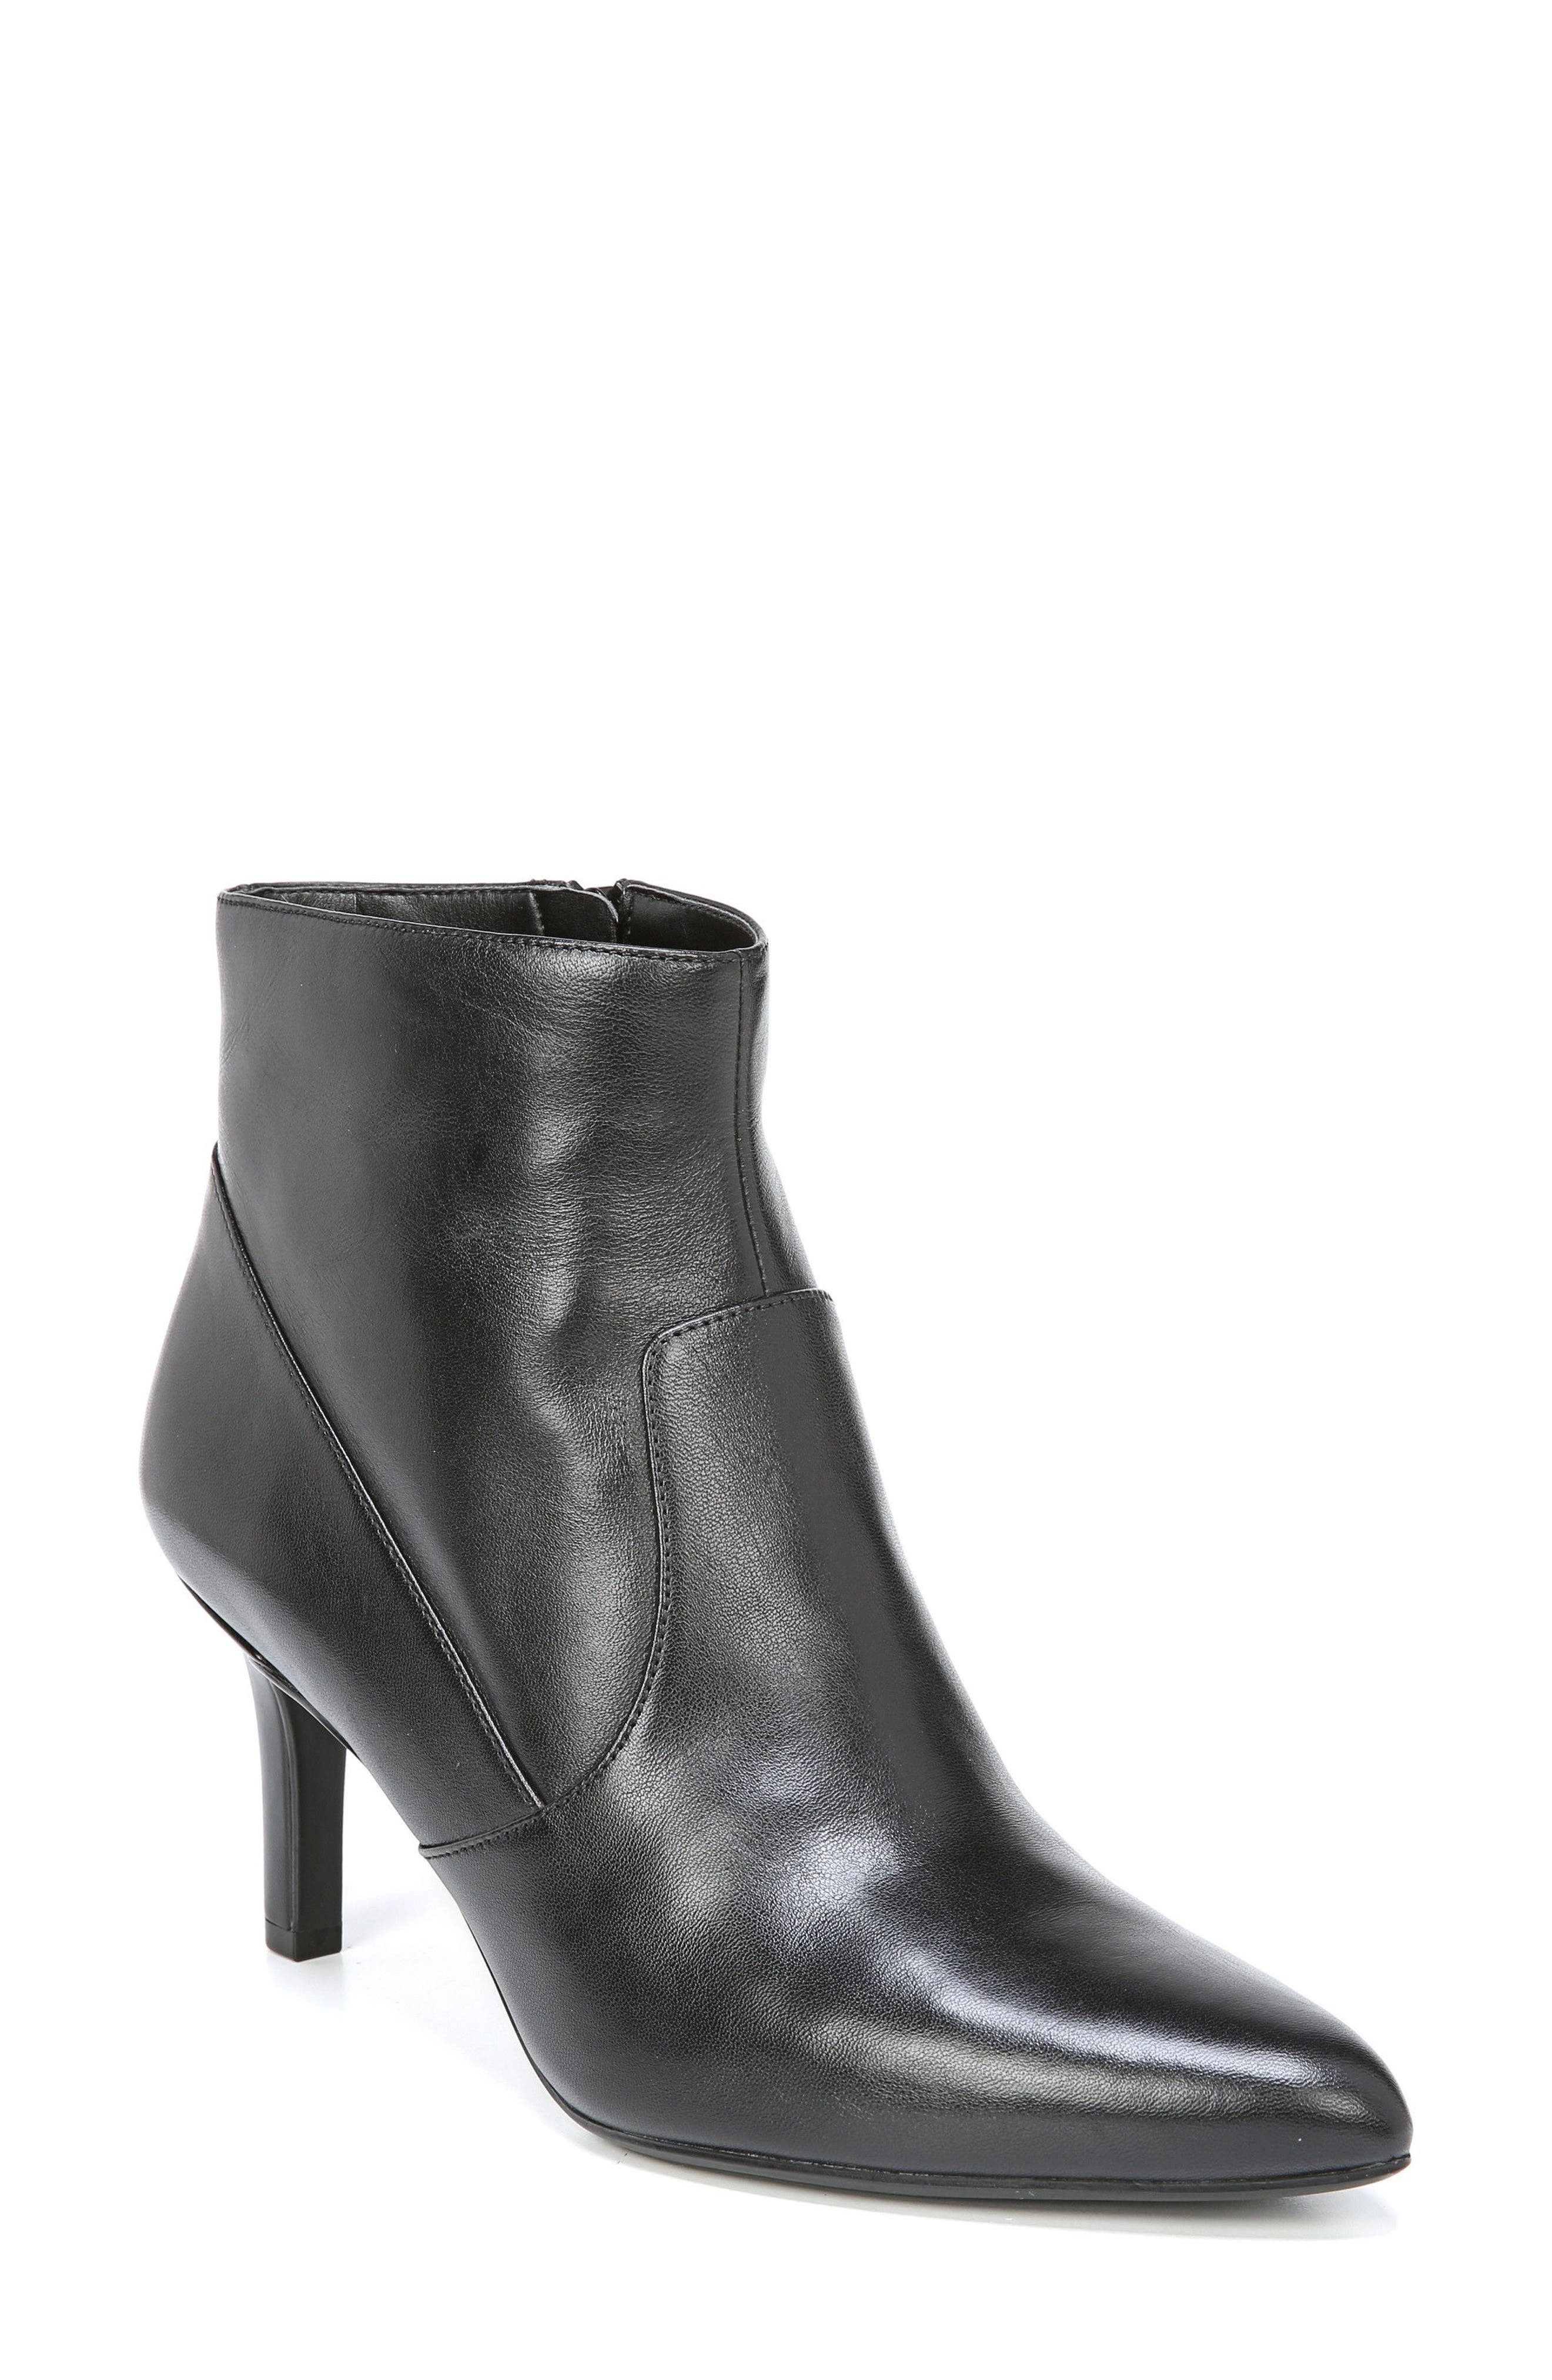 Nadine Bootie,                         Main,                         color, Black Leather